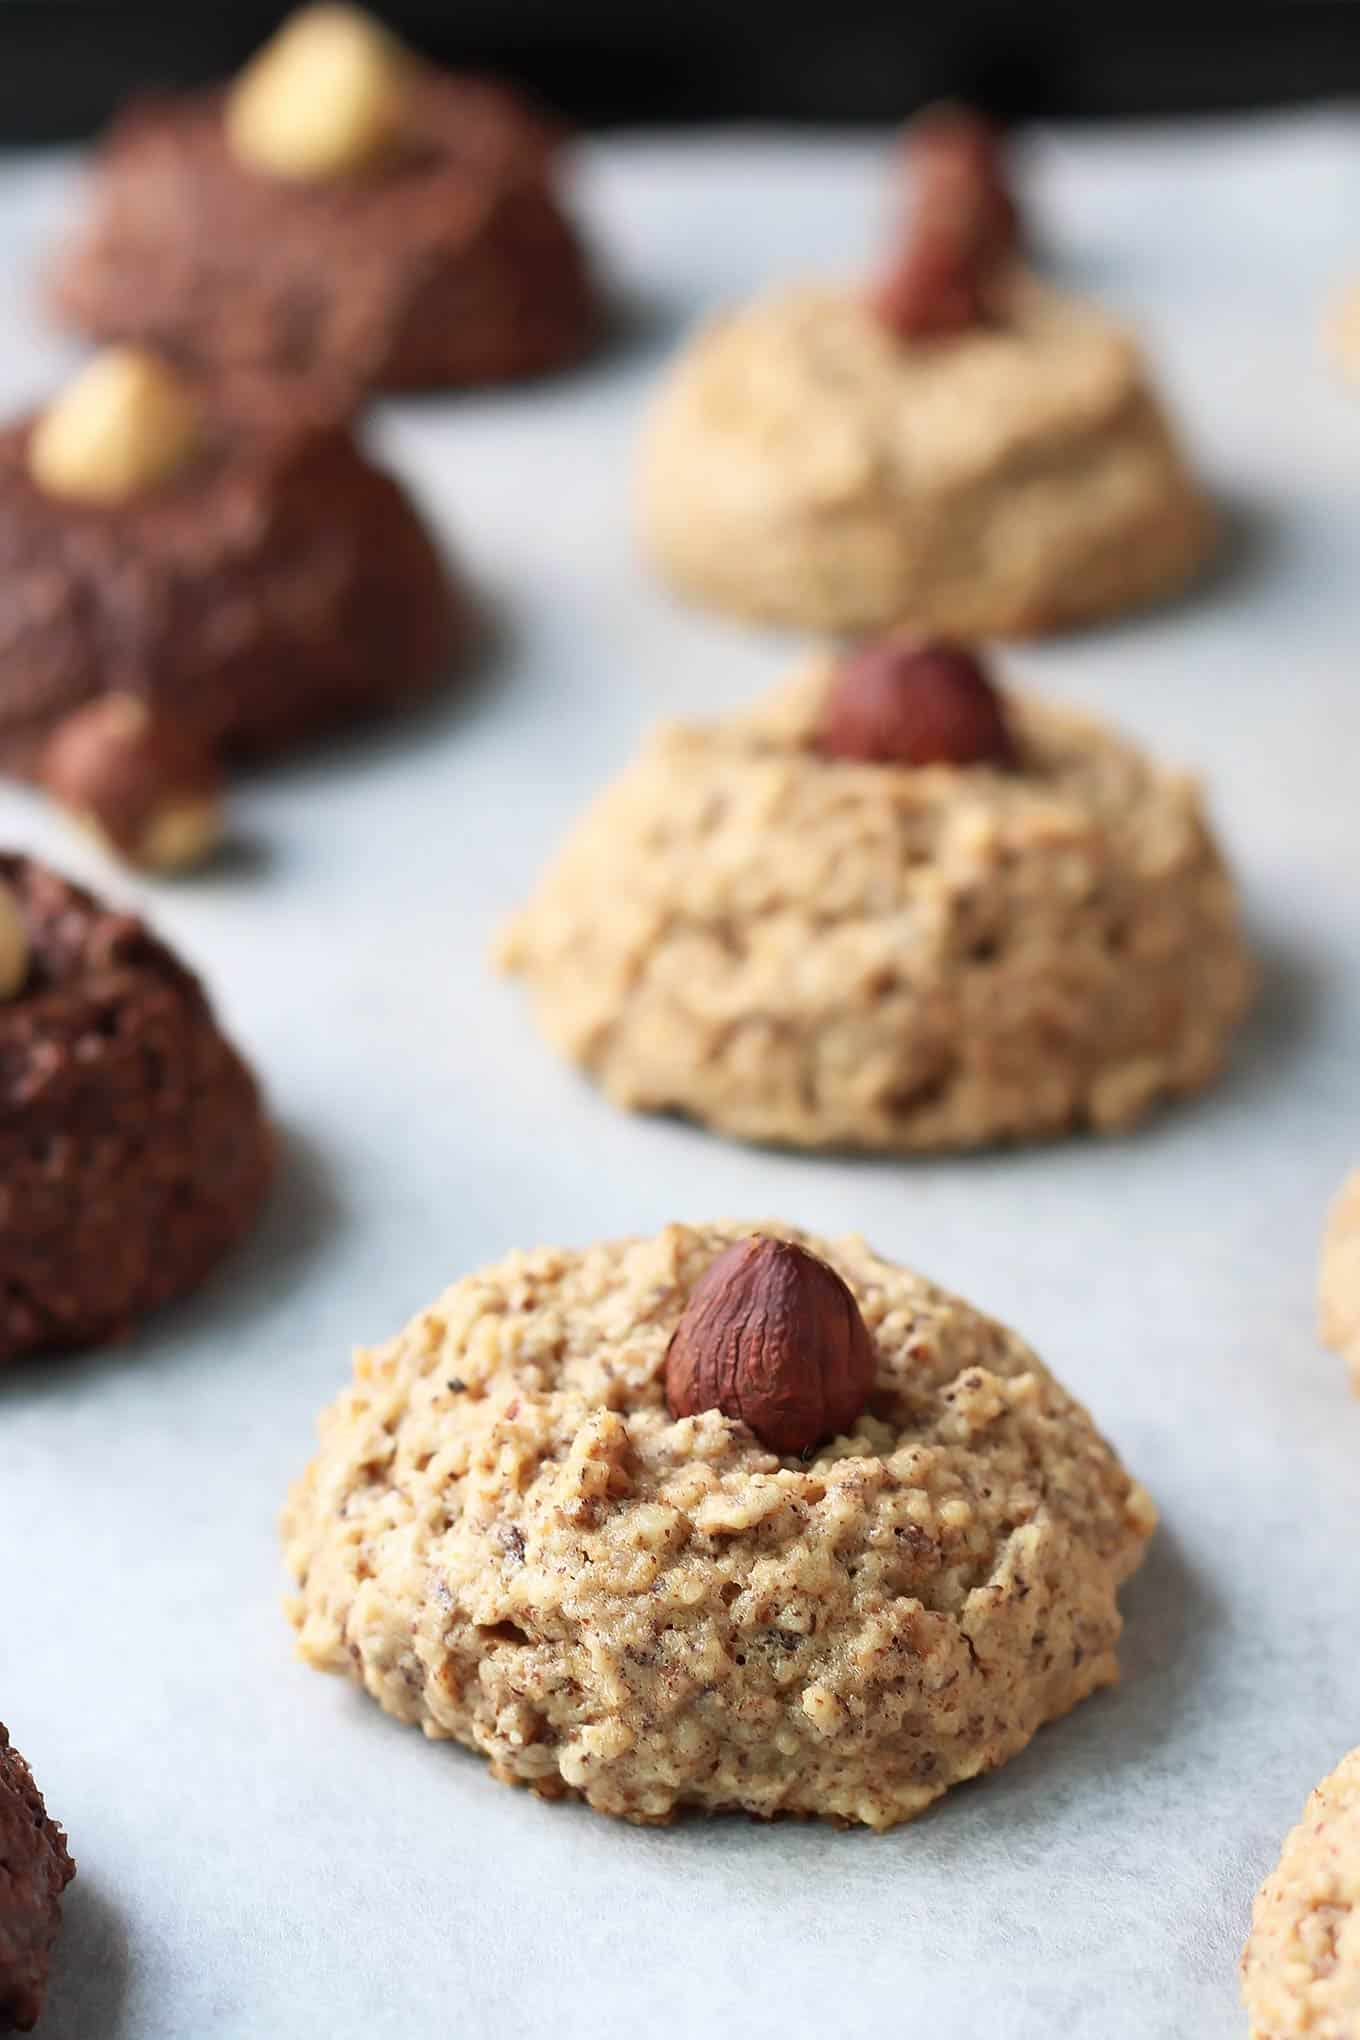 Honey Hazelnut Macaroons are a holiday twist on the classic coconut version. The soft, gluten-free cookies are only sweetened with honey and paleo-friendly